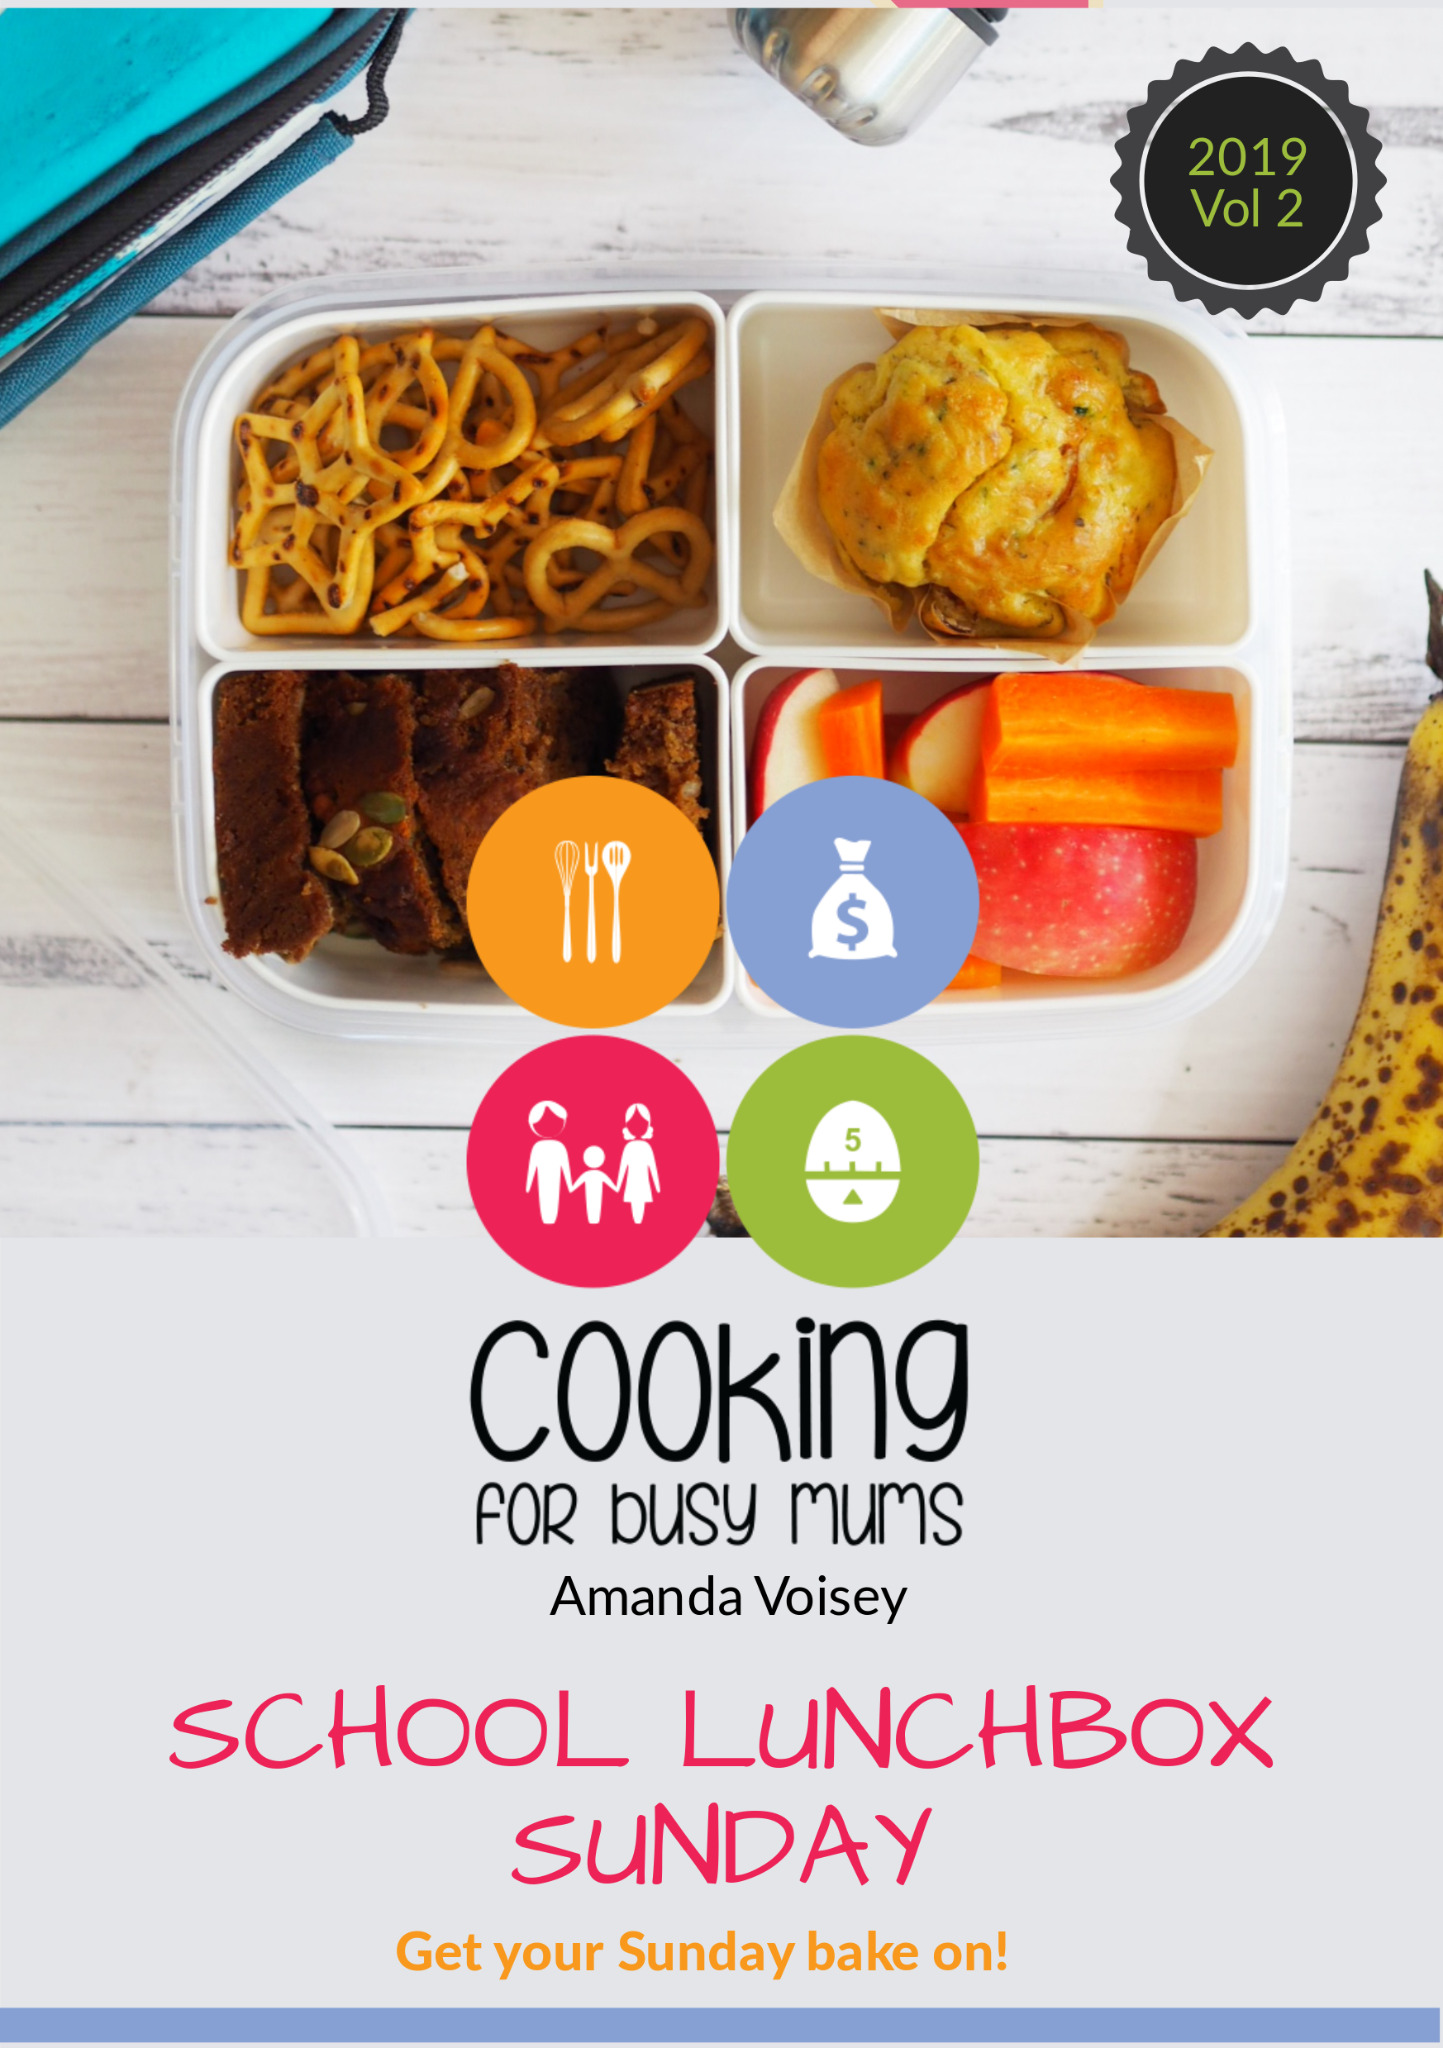 2019 School Lunchbox Sunday the Magazine - Printed Magazine & Free eBook